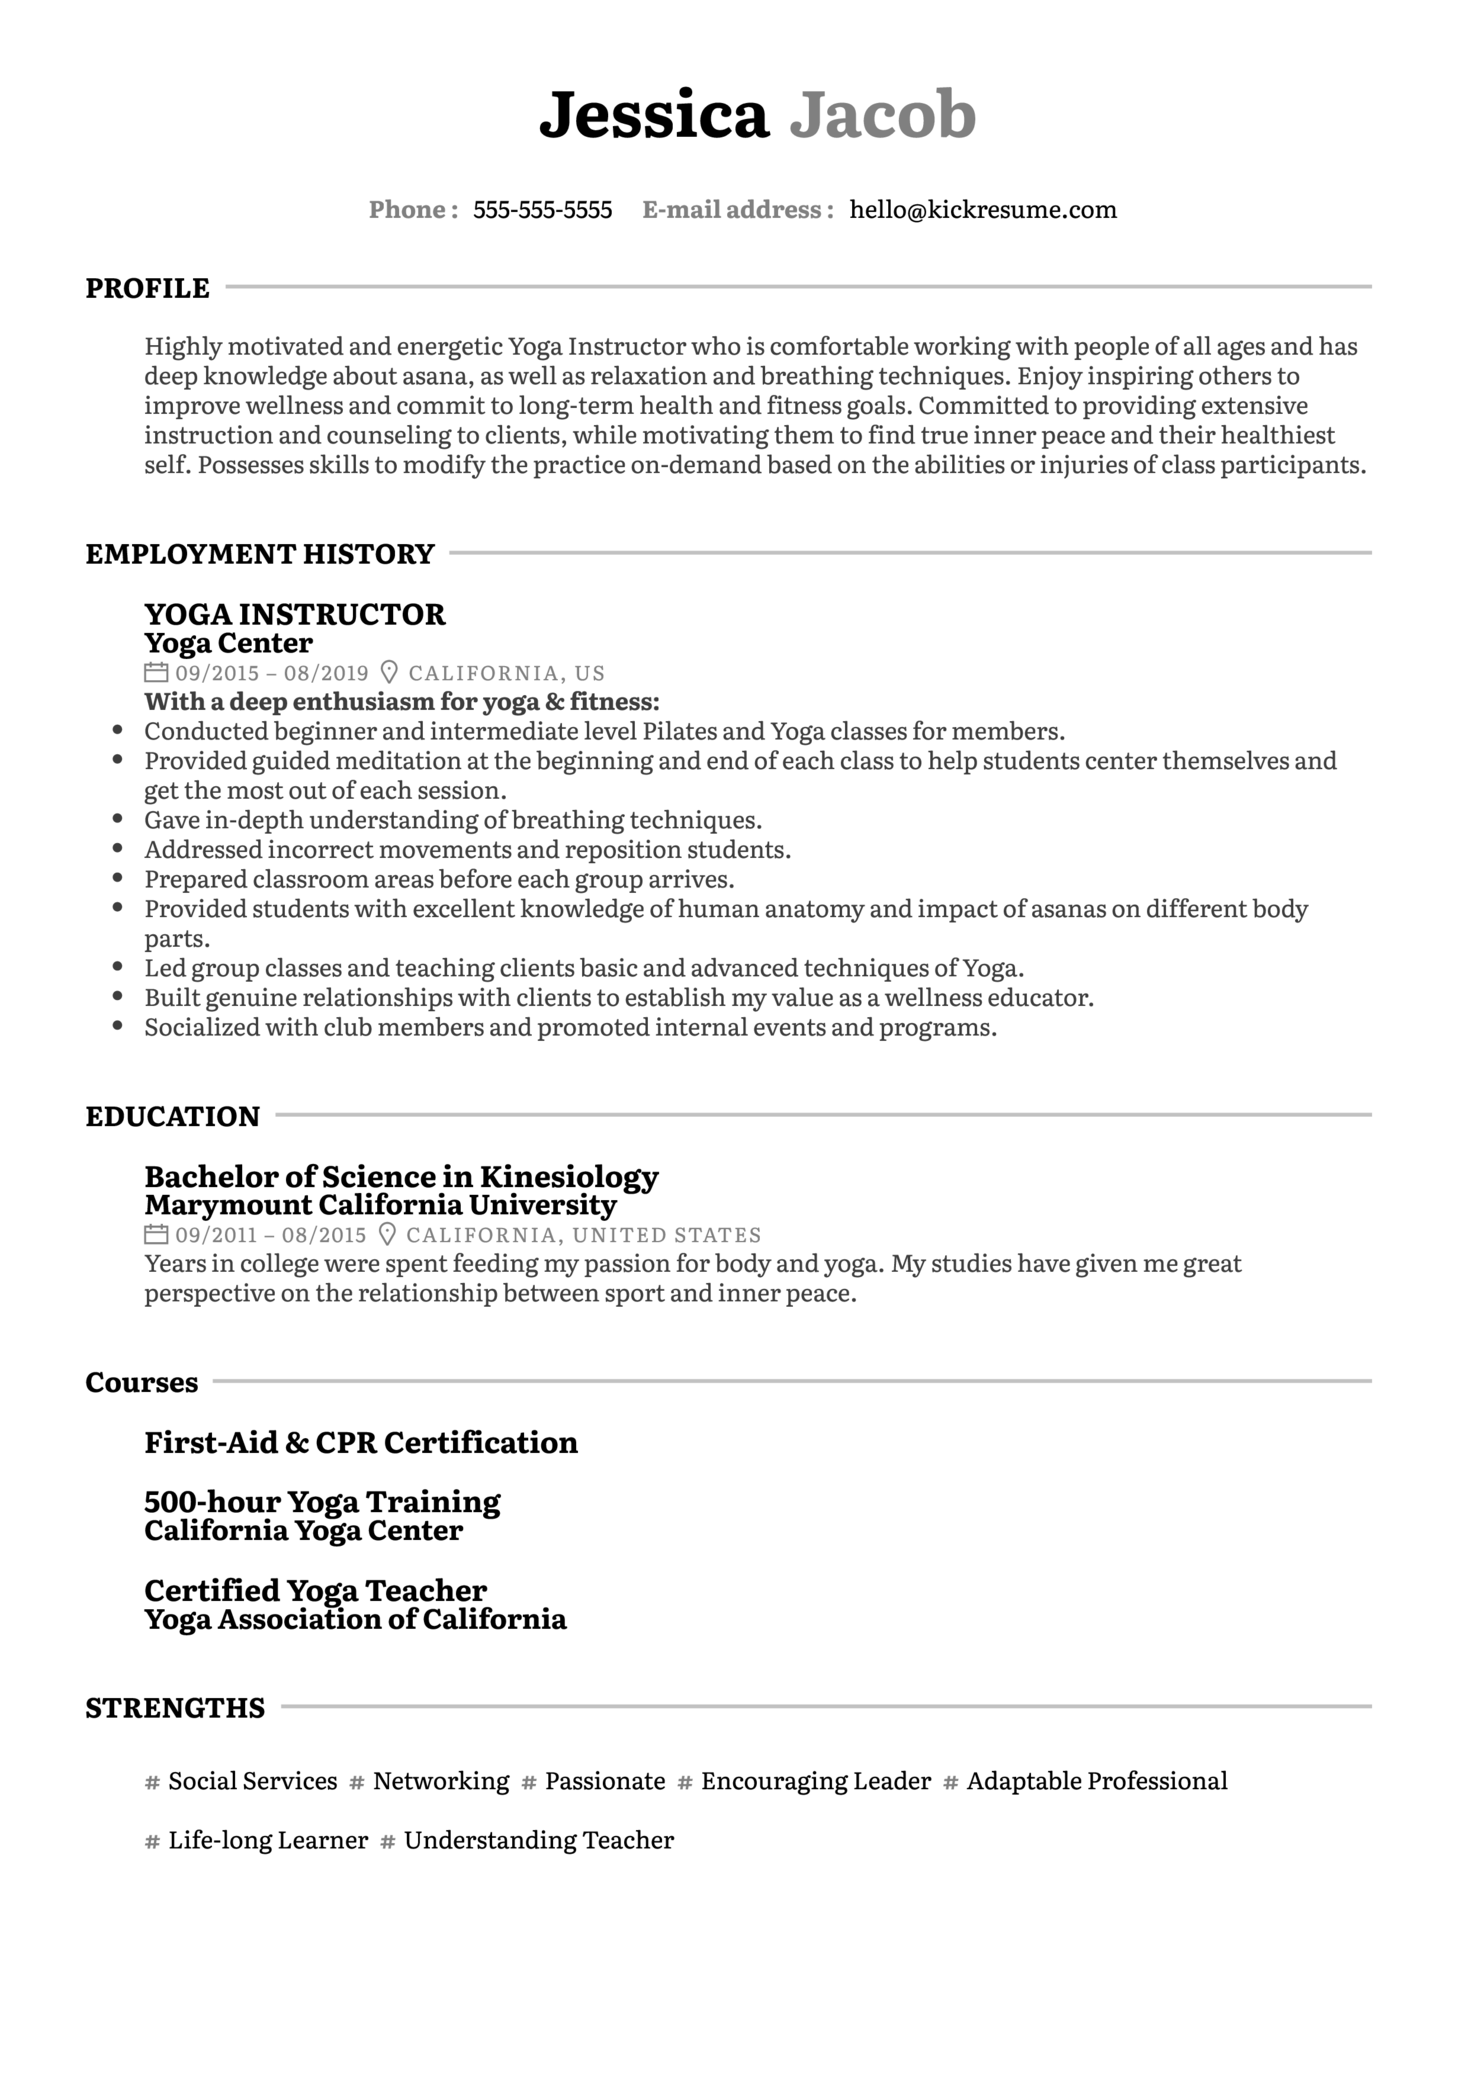 Yoga Instructor Resume Example (časť 1)